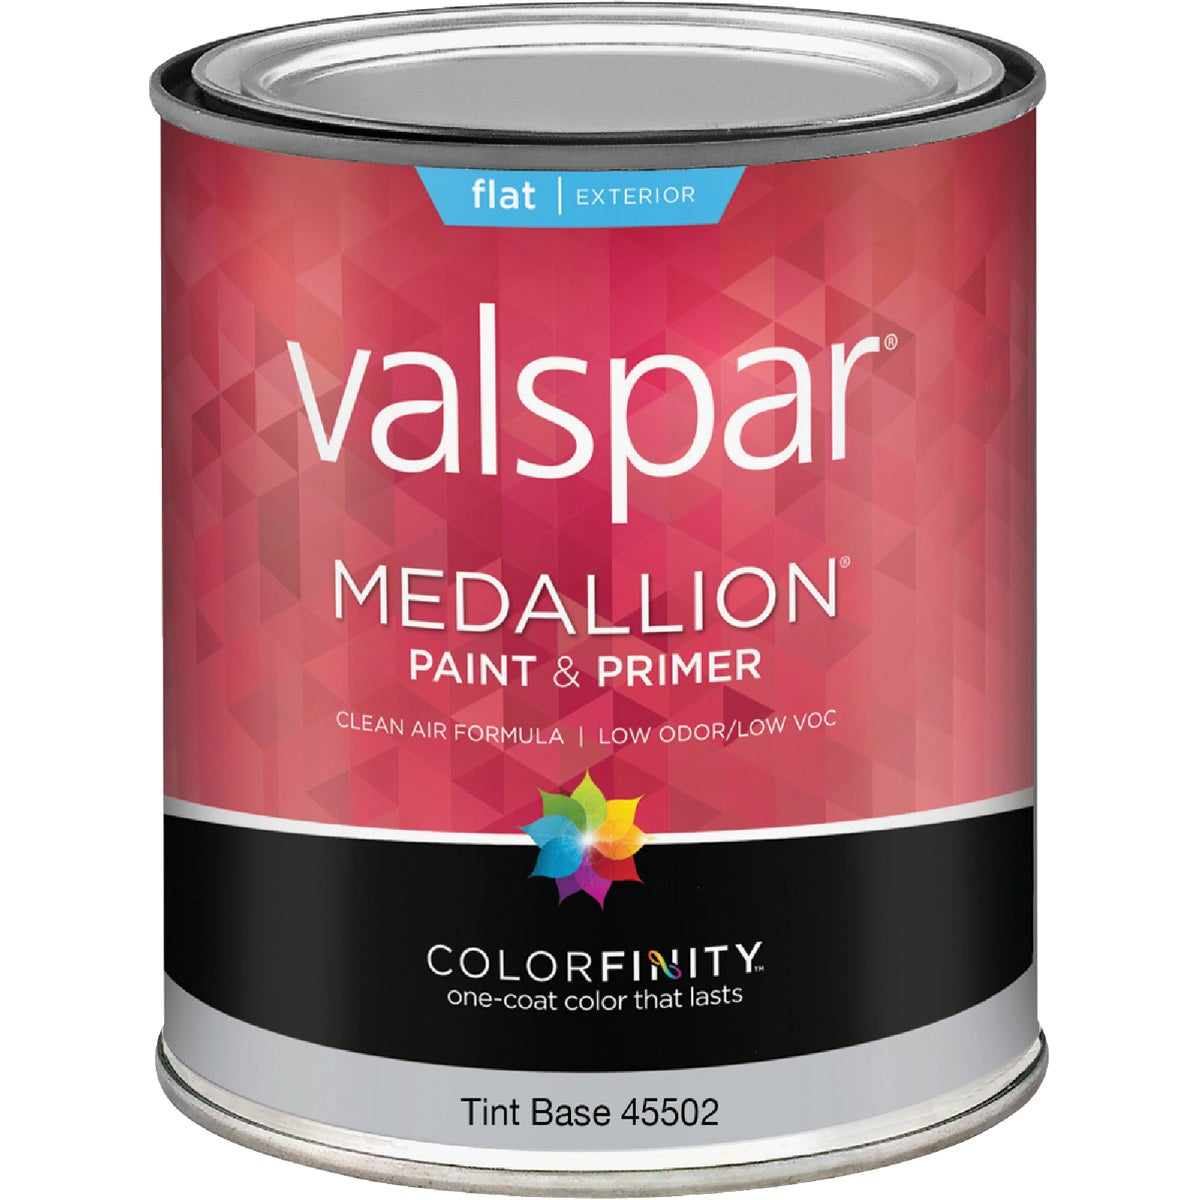 EXT FLAT TINT BS PAINT - 027.0045502.005 by Valspar Corp